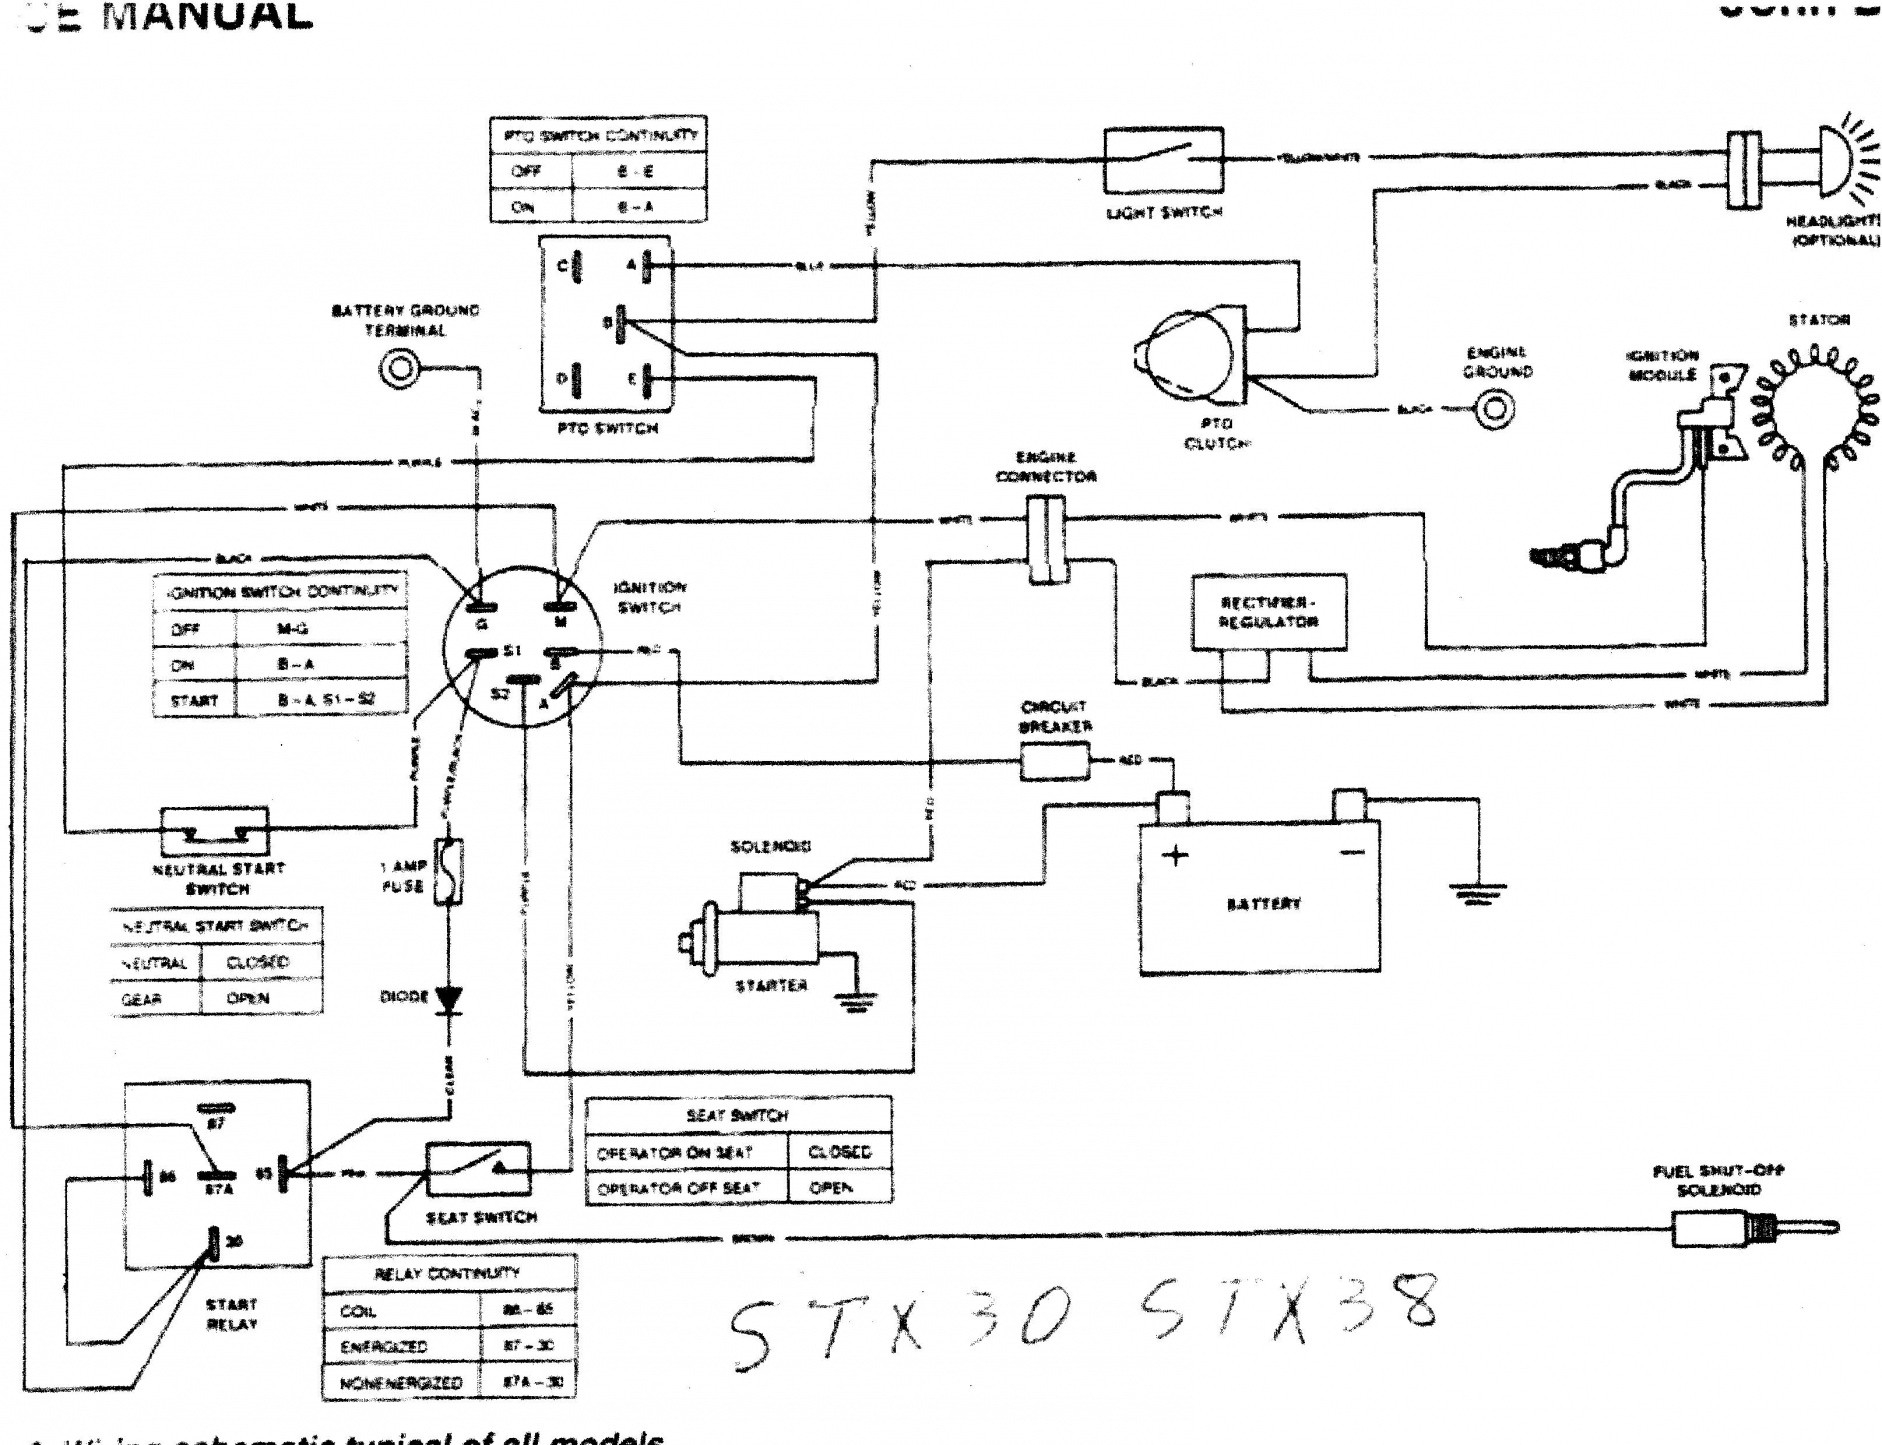 John Deere 2020 Wiring Harness - daily update wiring diagram on john deere 318 wiring-diagram, john deere solenoid wiring diagram, john deere l118 wiring harness, john deere tractor wiring, john deere lawn tractors brand, john deere lt120 transmission, john deere z225 wiring harness, john deere lawn tractor electrical diagram, john deere ignition wiring diagram, john deere wiring harness diagram, john deere 130 wiring-diagram, john deere stx38 wiring-diagram, john deere parts diagrams, john deere lx255 wiring-diagram, john deere l120 diagrams, john deere 50 wiring diagram, john deere la120 belt diagram, john deere d160 wiring harness, john deere mower wiring diagram, john deere model a wiring diagram,